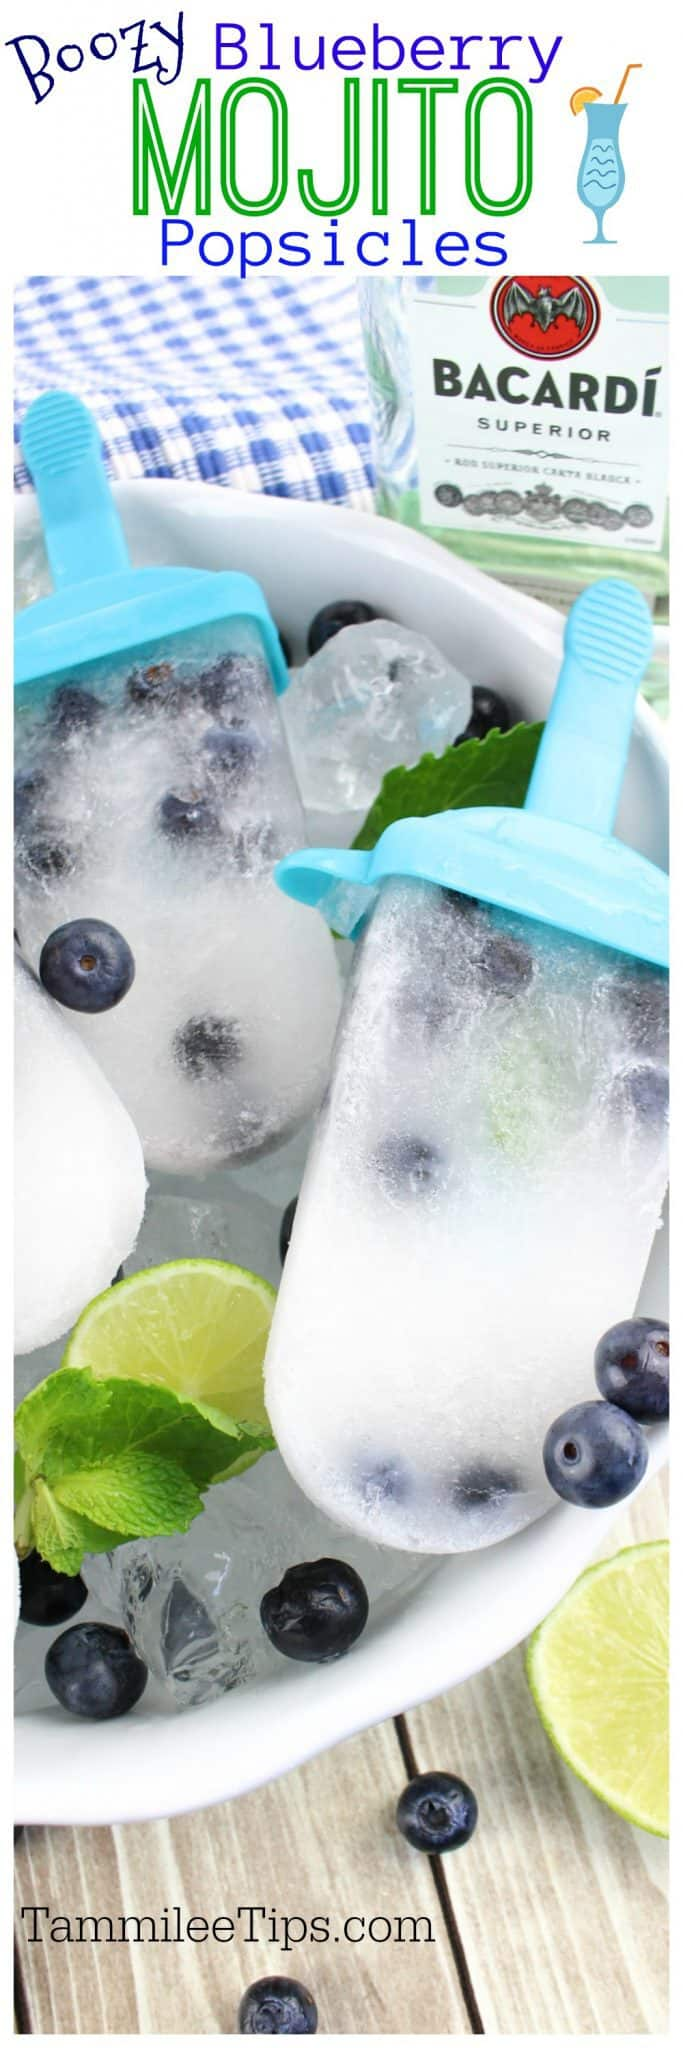 Celebrate Summer with these boozy adult blueberry mojito popsicle recipe! Perfect for parties, barbecues, picnics or any day of the week.